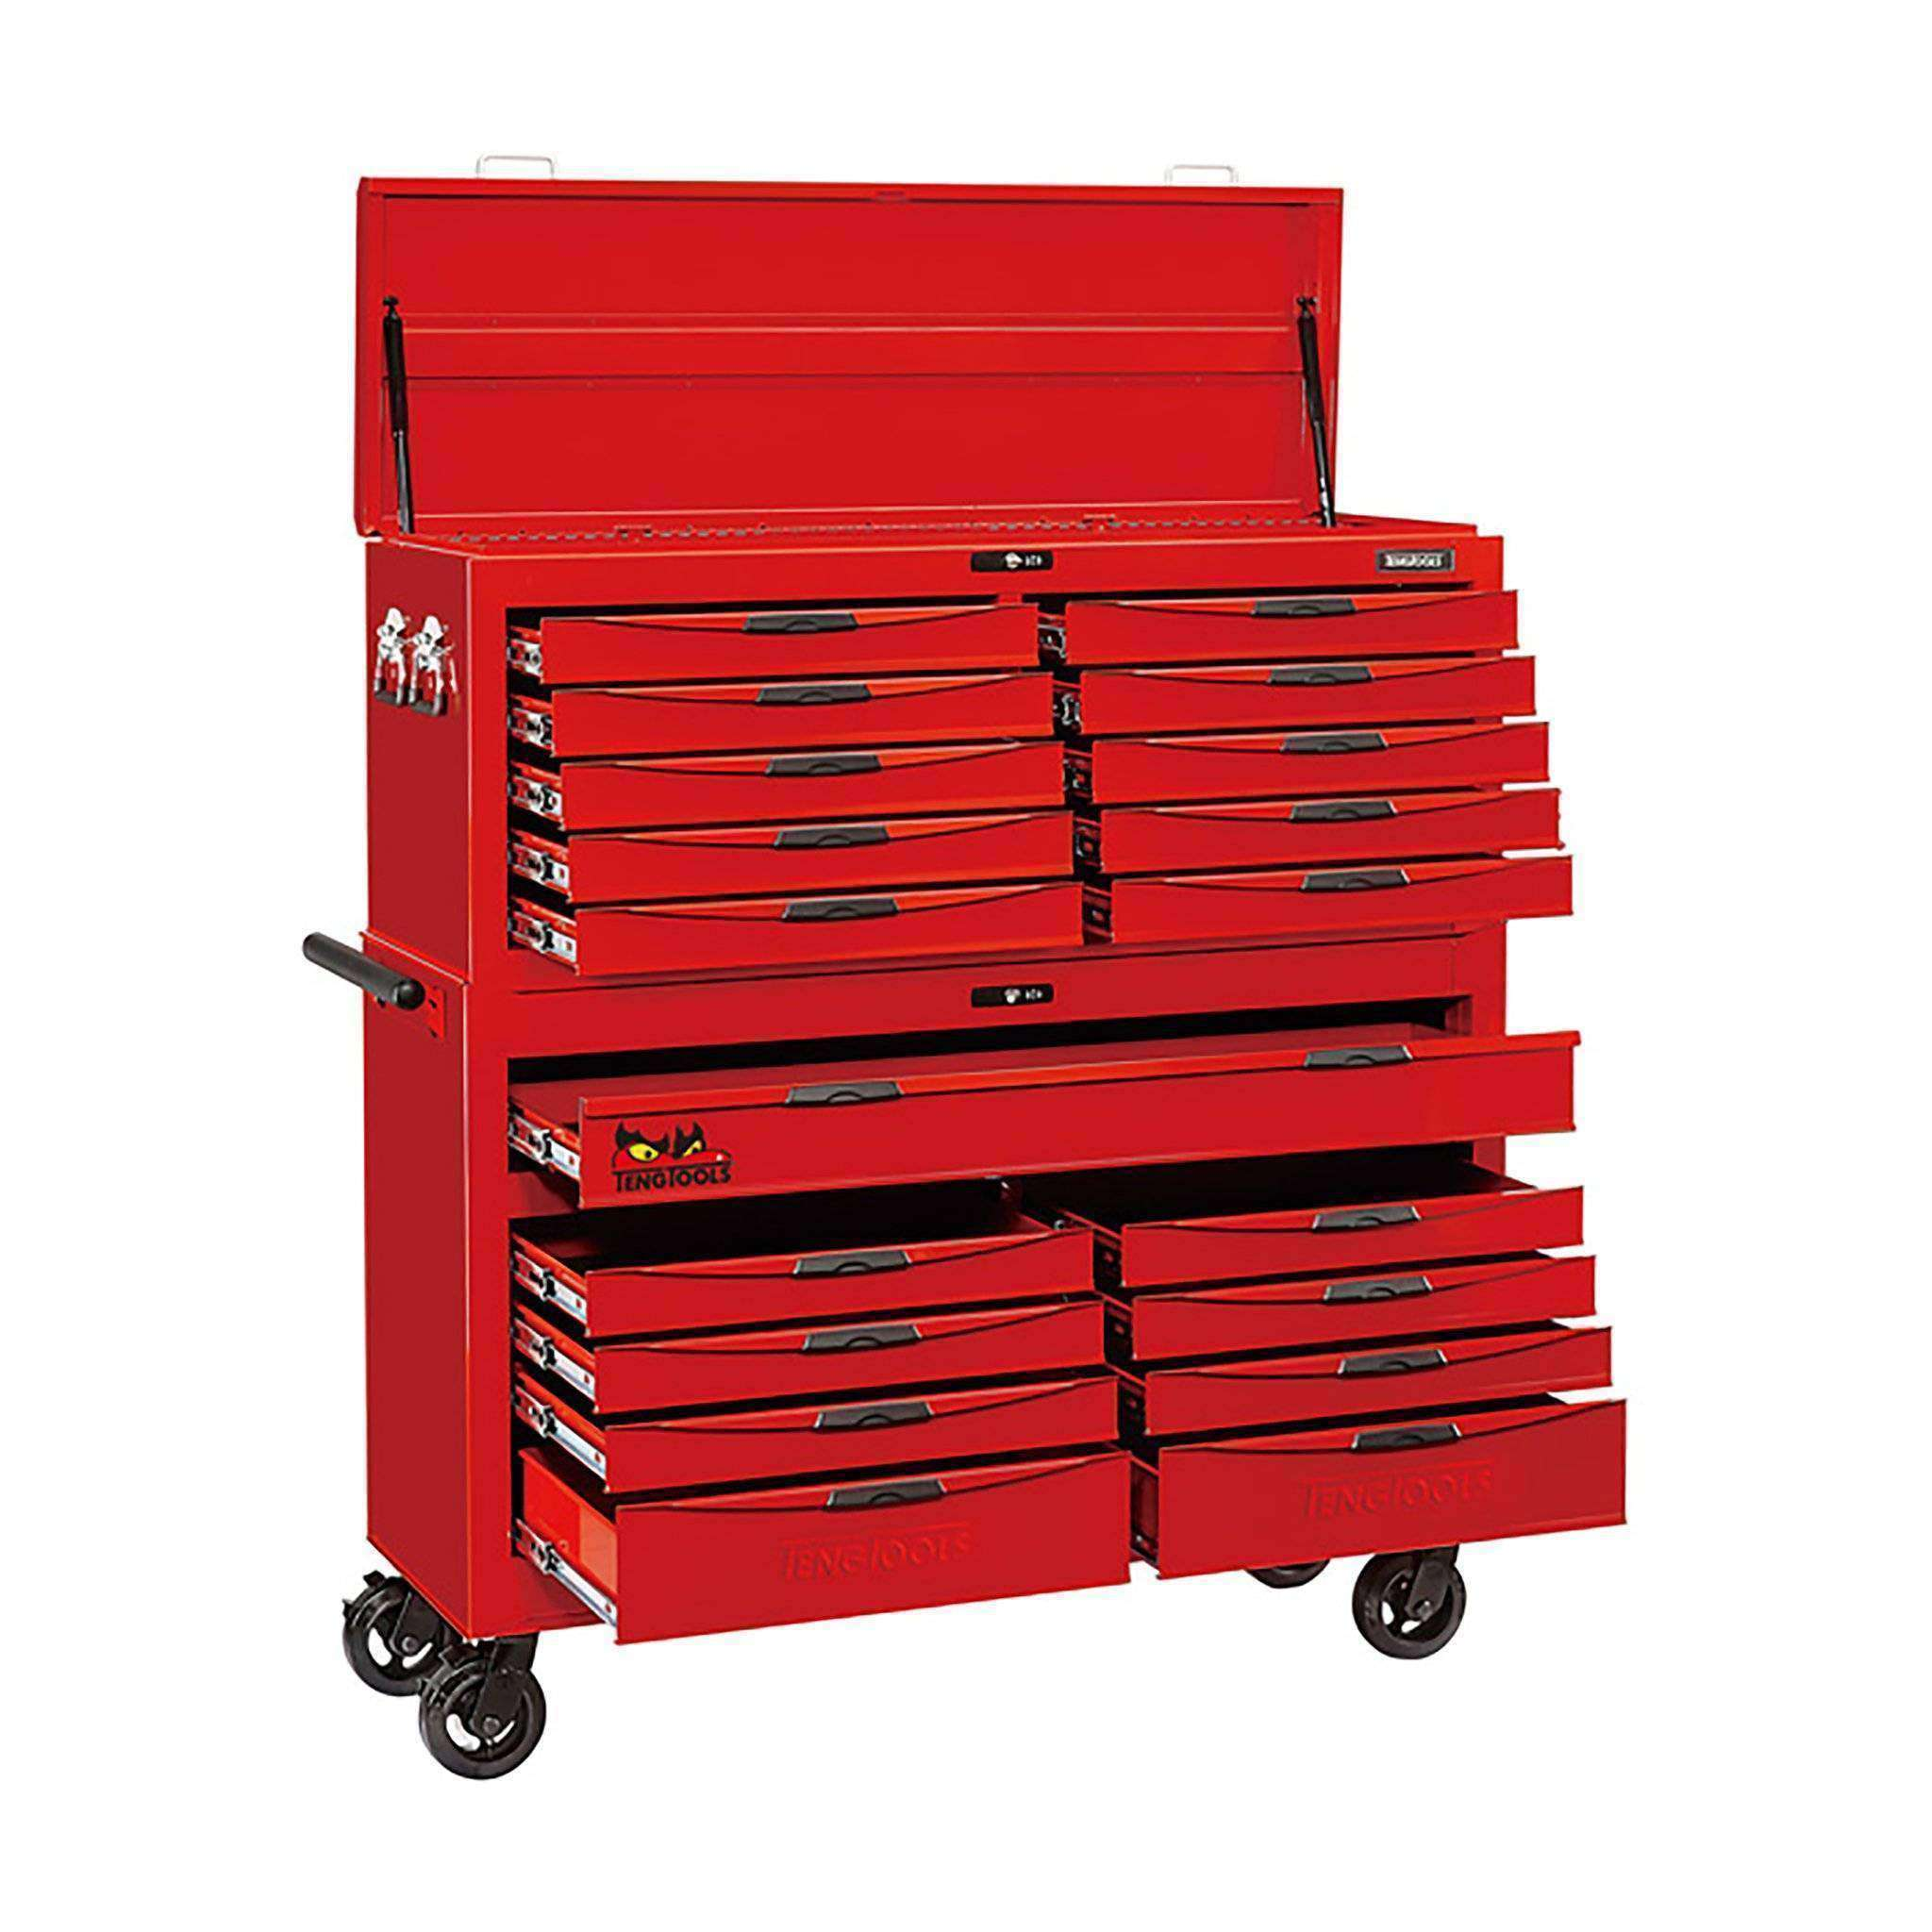 "Teng Tools 8 Series 53"" 9 Drawer Roller Cabinet and 10 Drawer Top Box - Teng Tools USA"